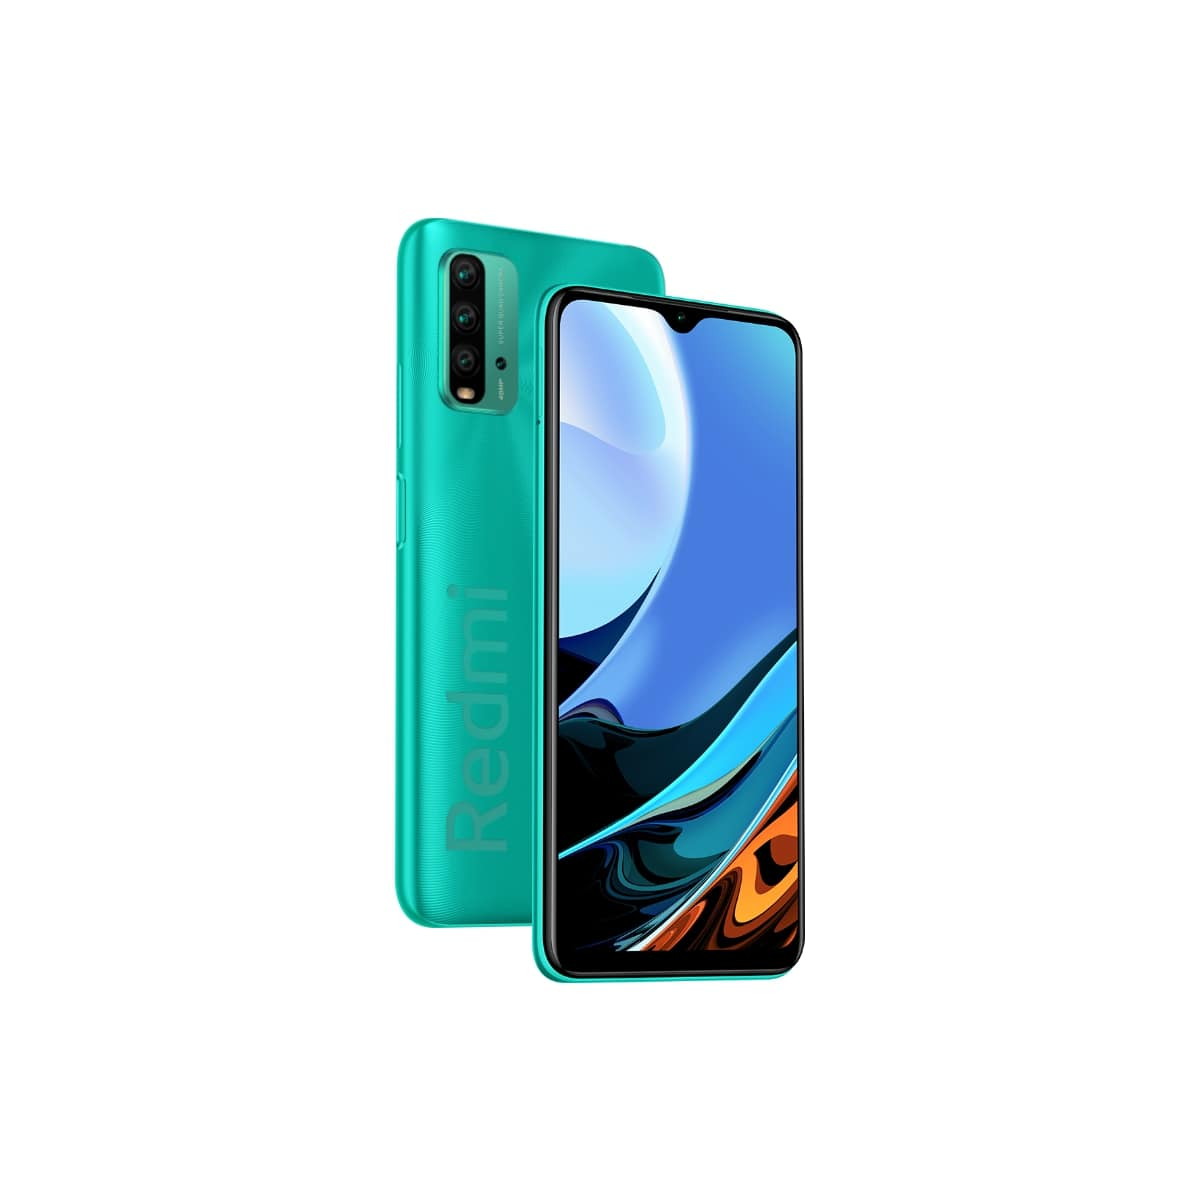 Redmi 9 Power Price, Specifications, and Features in Nepal